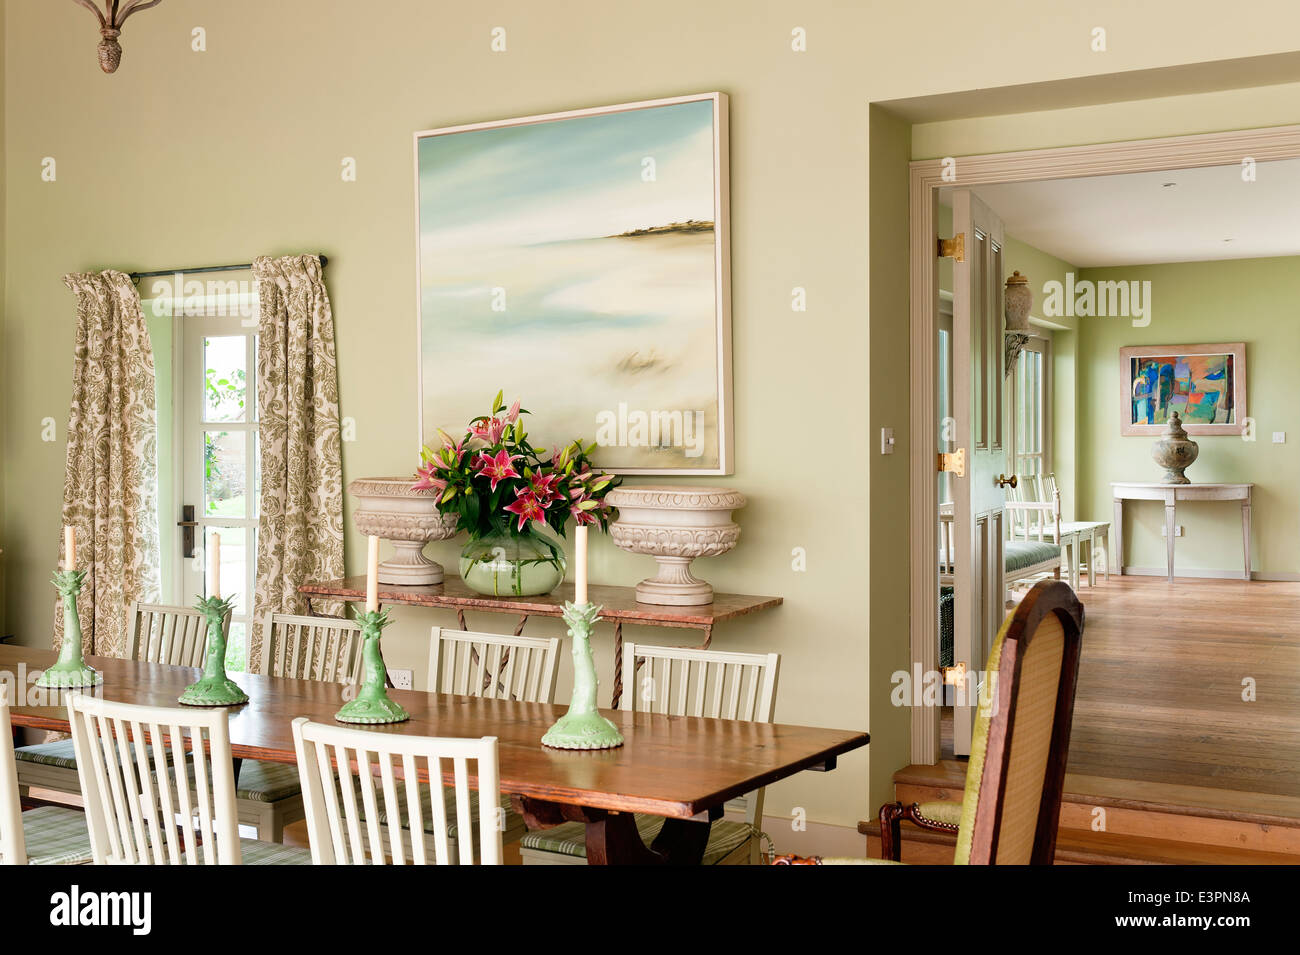 Old French farmhouse table in dining room with Swedish style chairs and green ceramic candle holders. - Stock Image